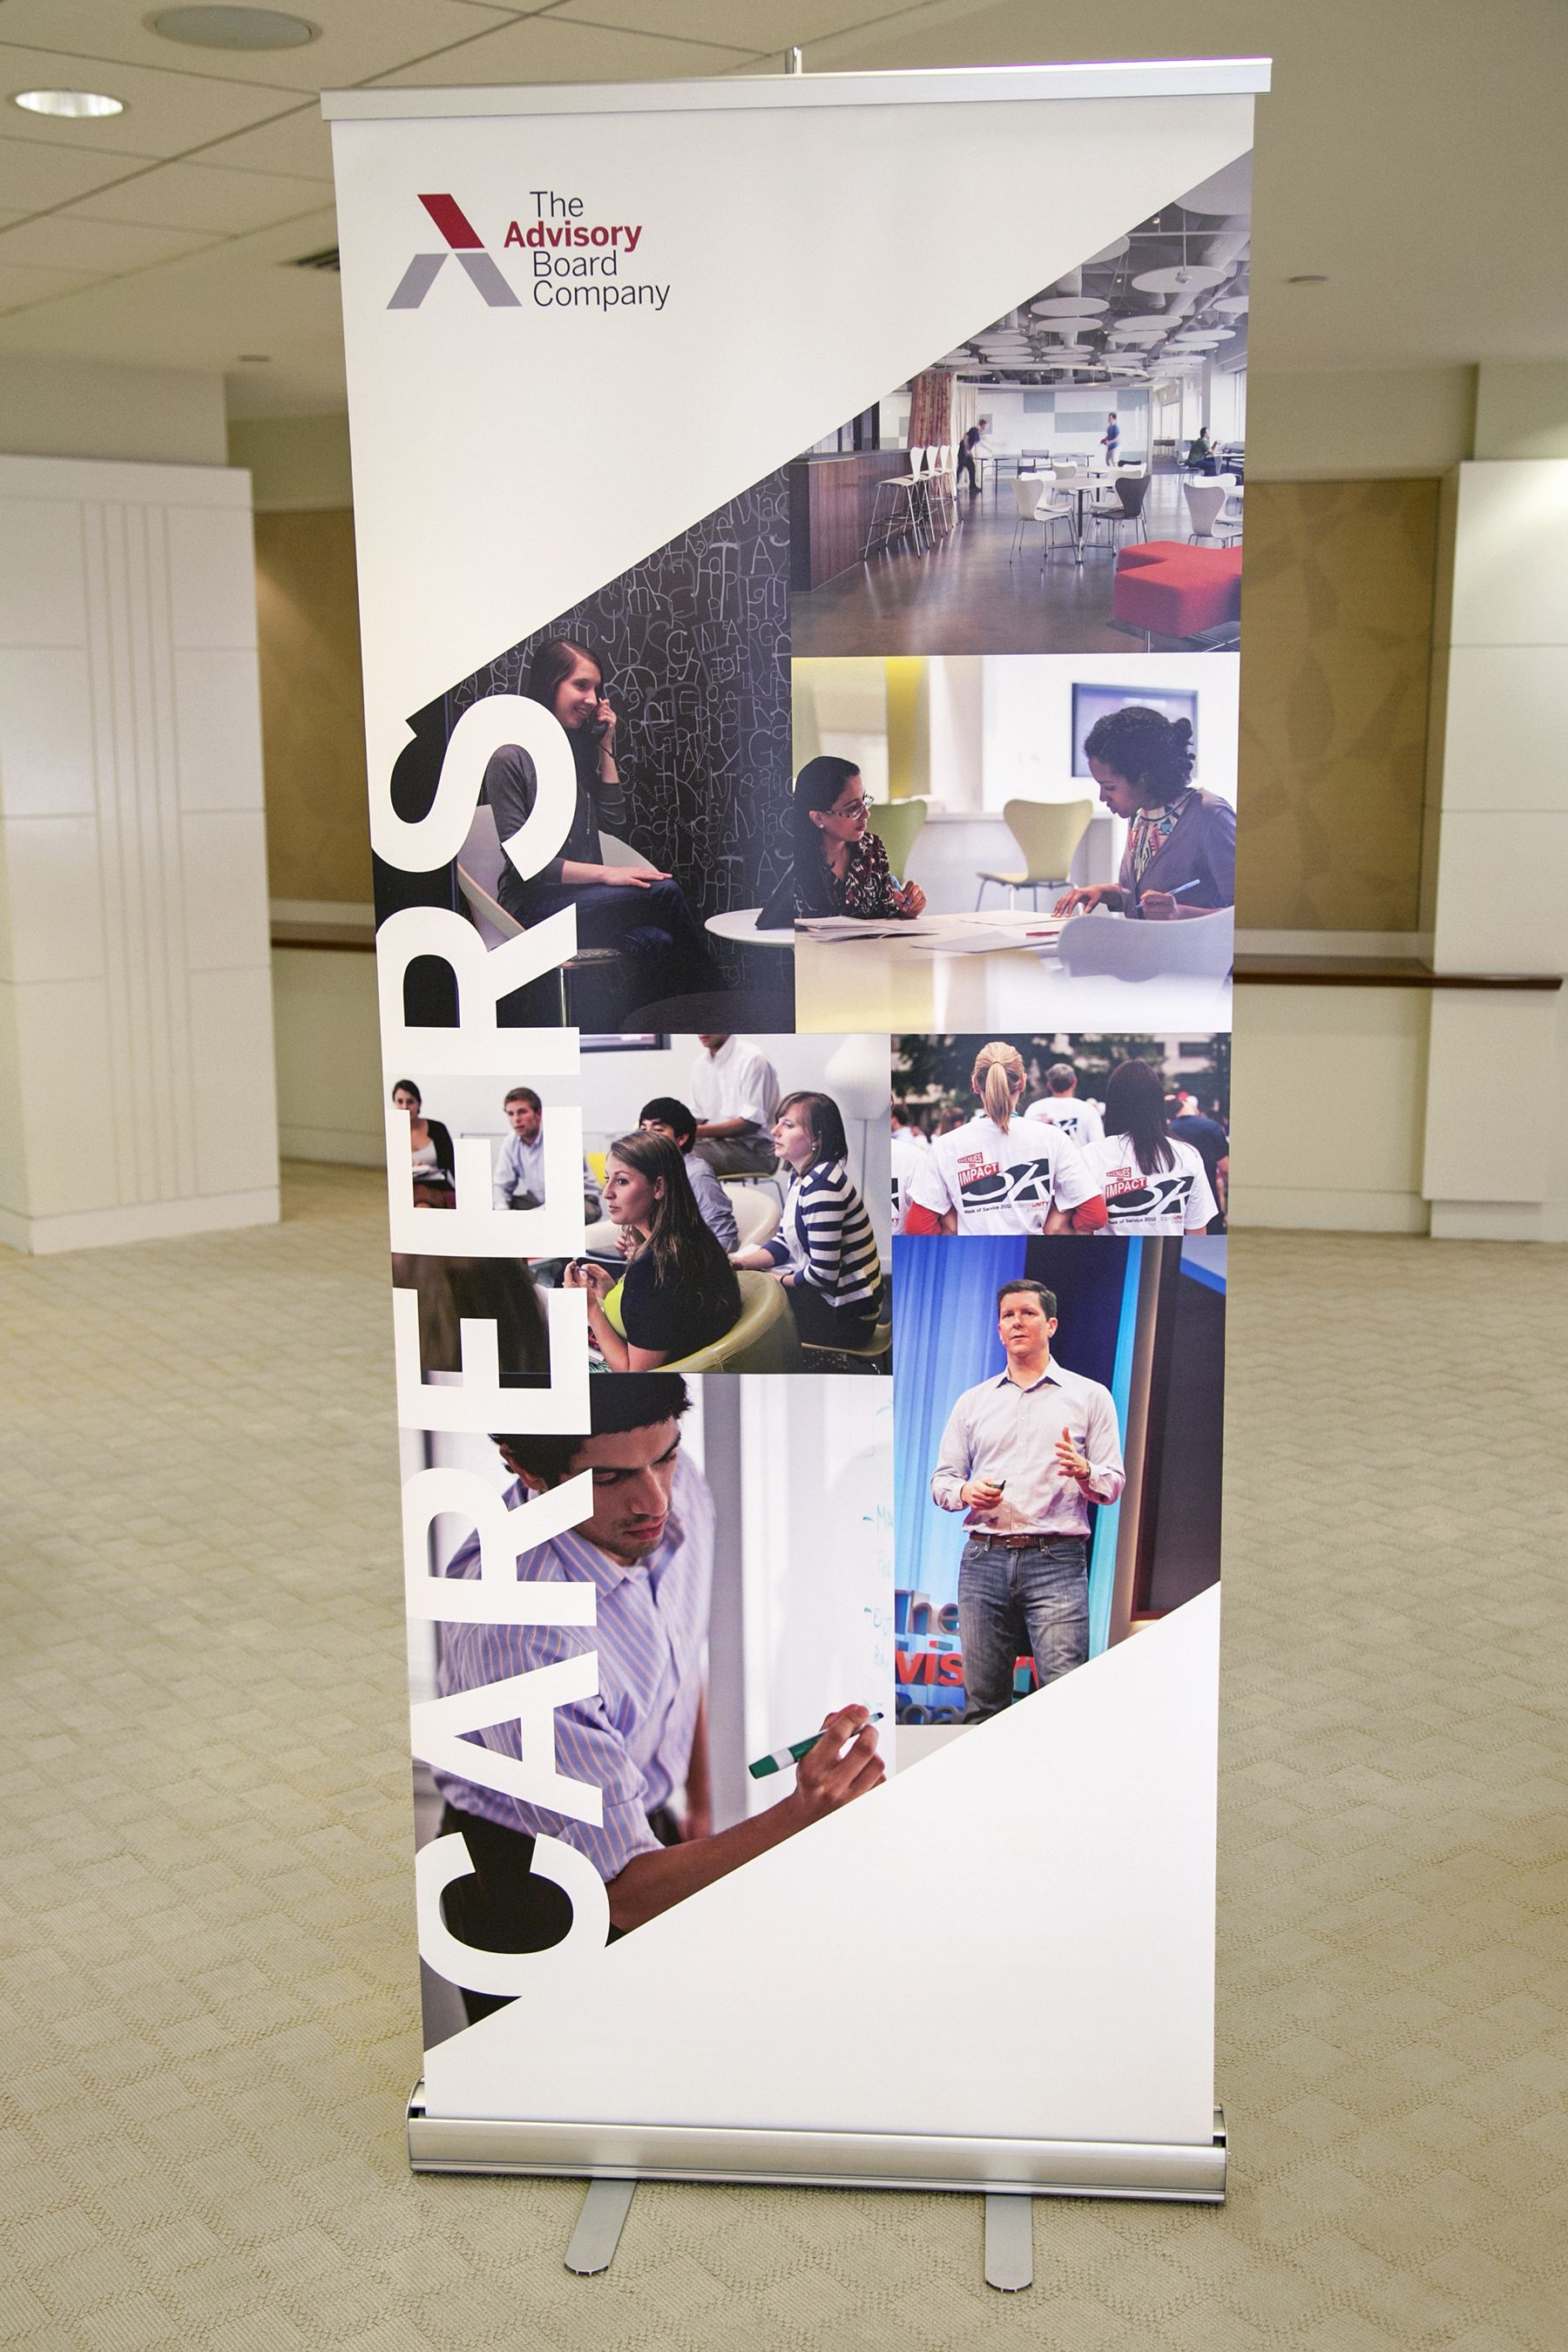 Career Management PopUp Banner Tradeshow Inspiration Signage - Vinyl banners and signsexhibitiondisplay signs pvc banners roller banners flag